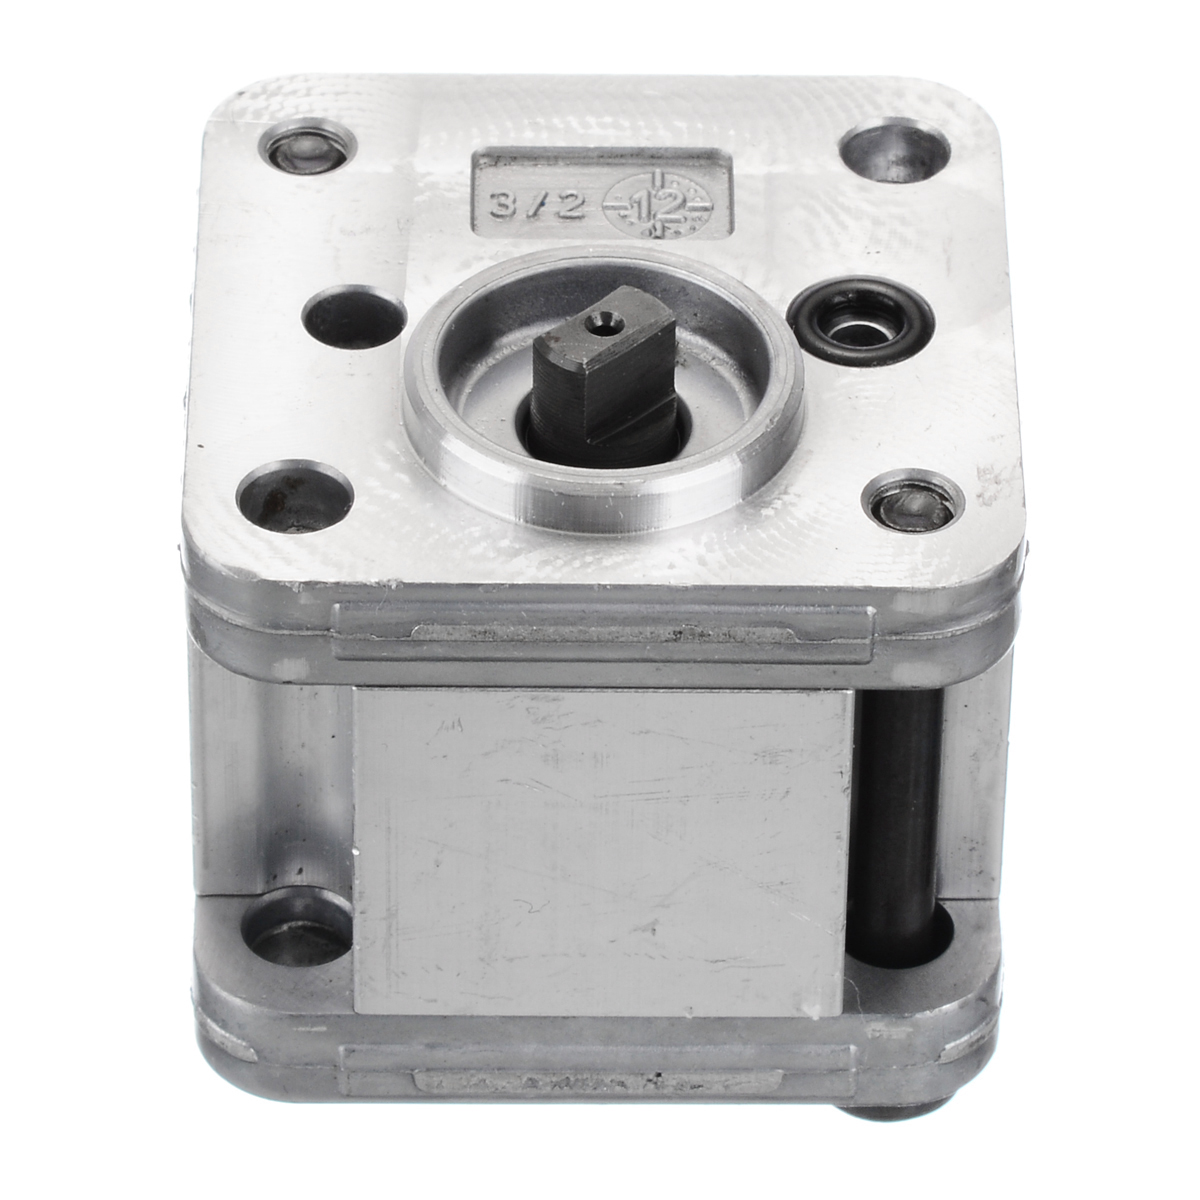 1Pcs Hydraulic Gear Oil Pump Metal Gear Pump Hydraulic DIY Model Excavating Machinery Tools Durable With Working Pressure 1-5Mpa